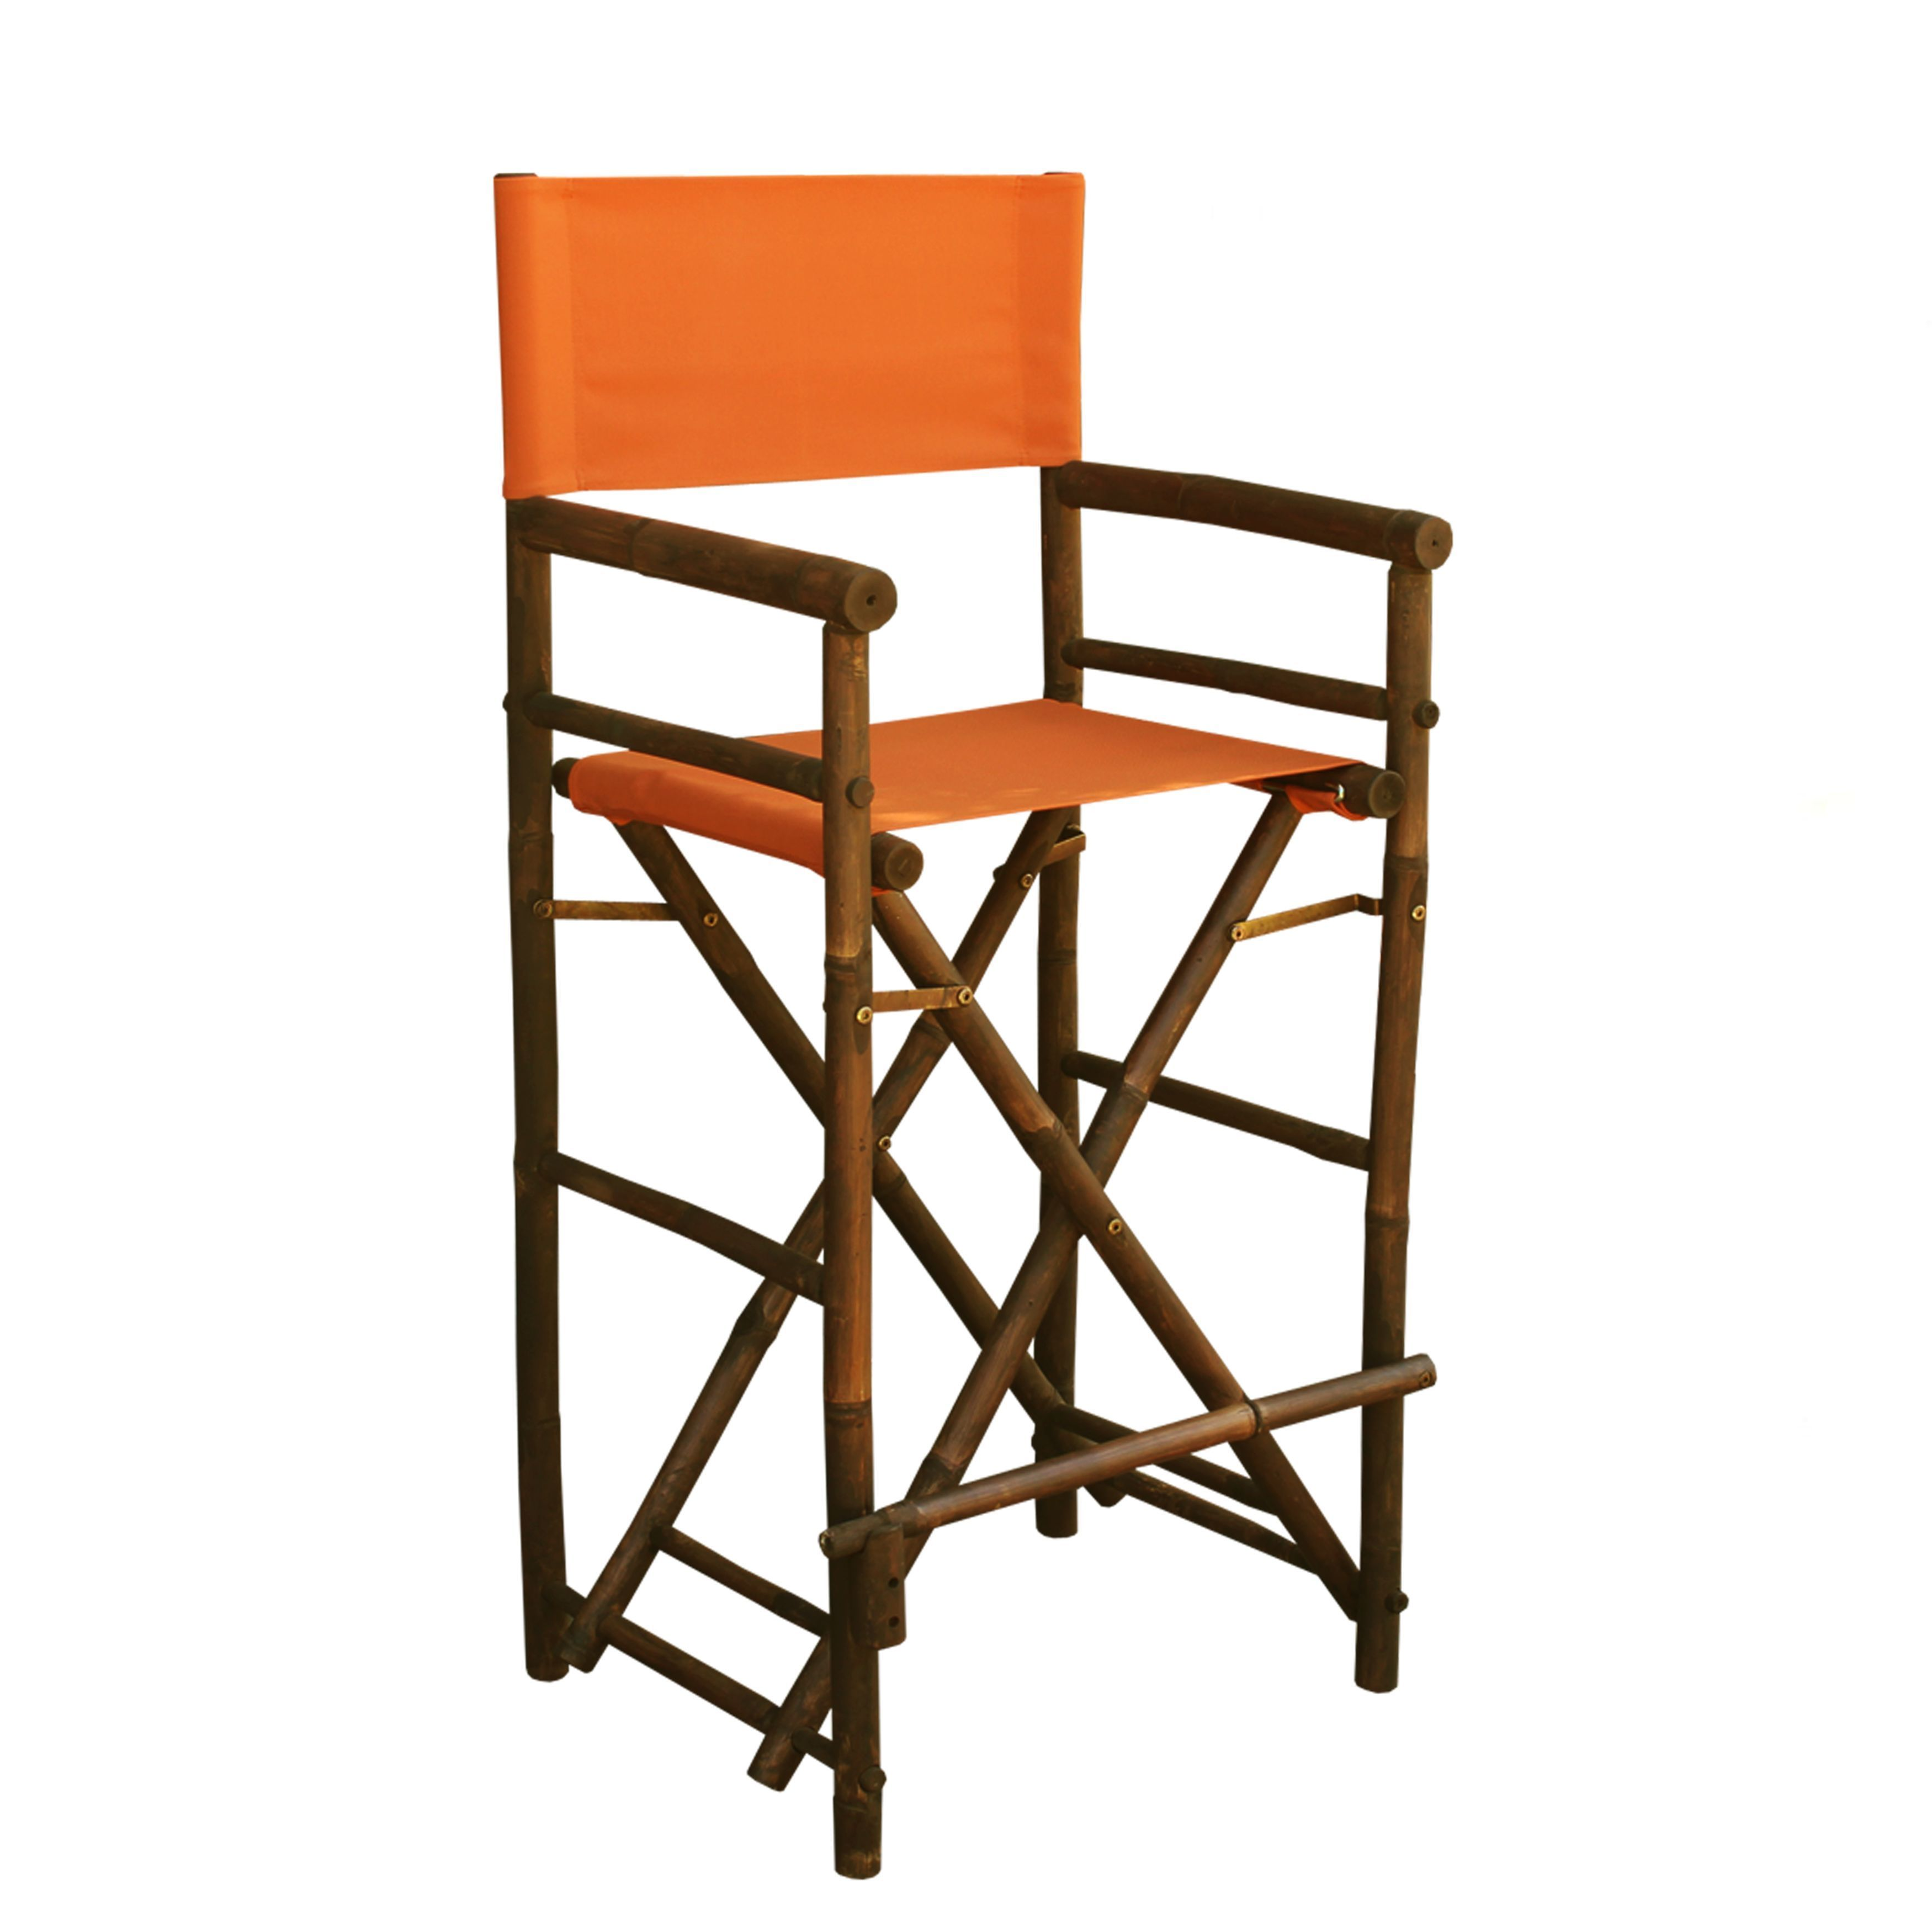 bamboo directors chairs best back cushion for office chair zew handcrafted espresso bar height director